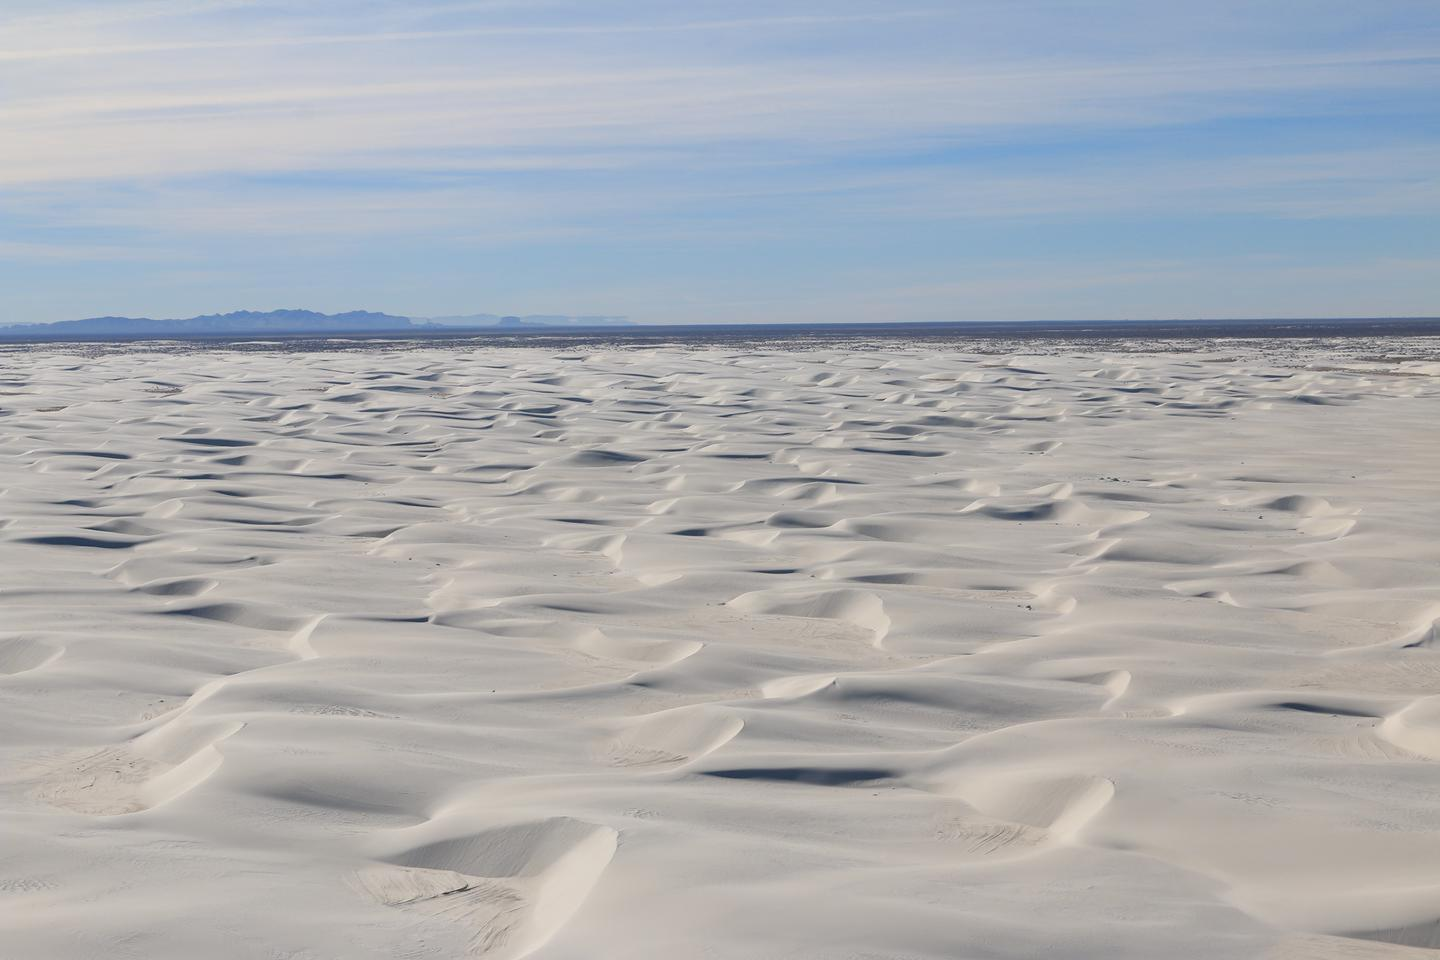 Aerial of DunefieldThe dunes at White Sands cover 275 square miles of the Tularosa Basin.